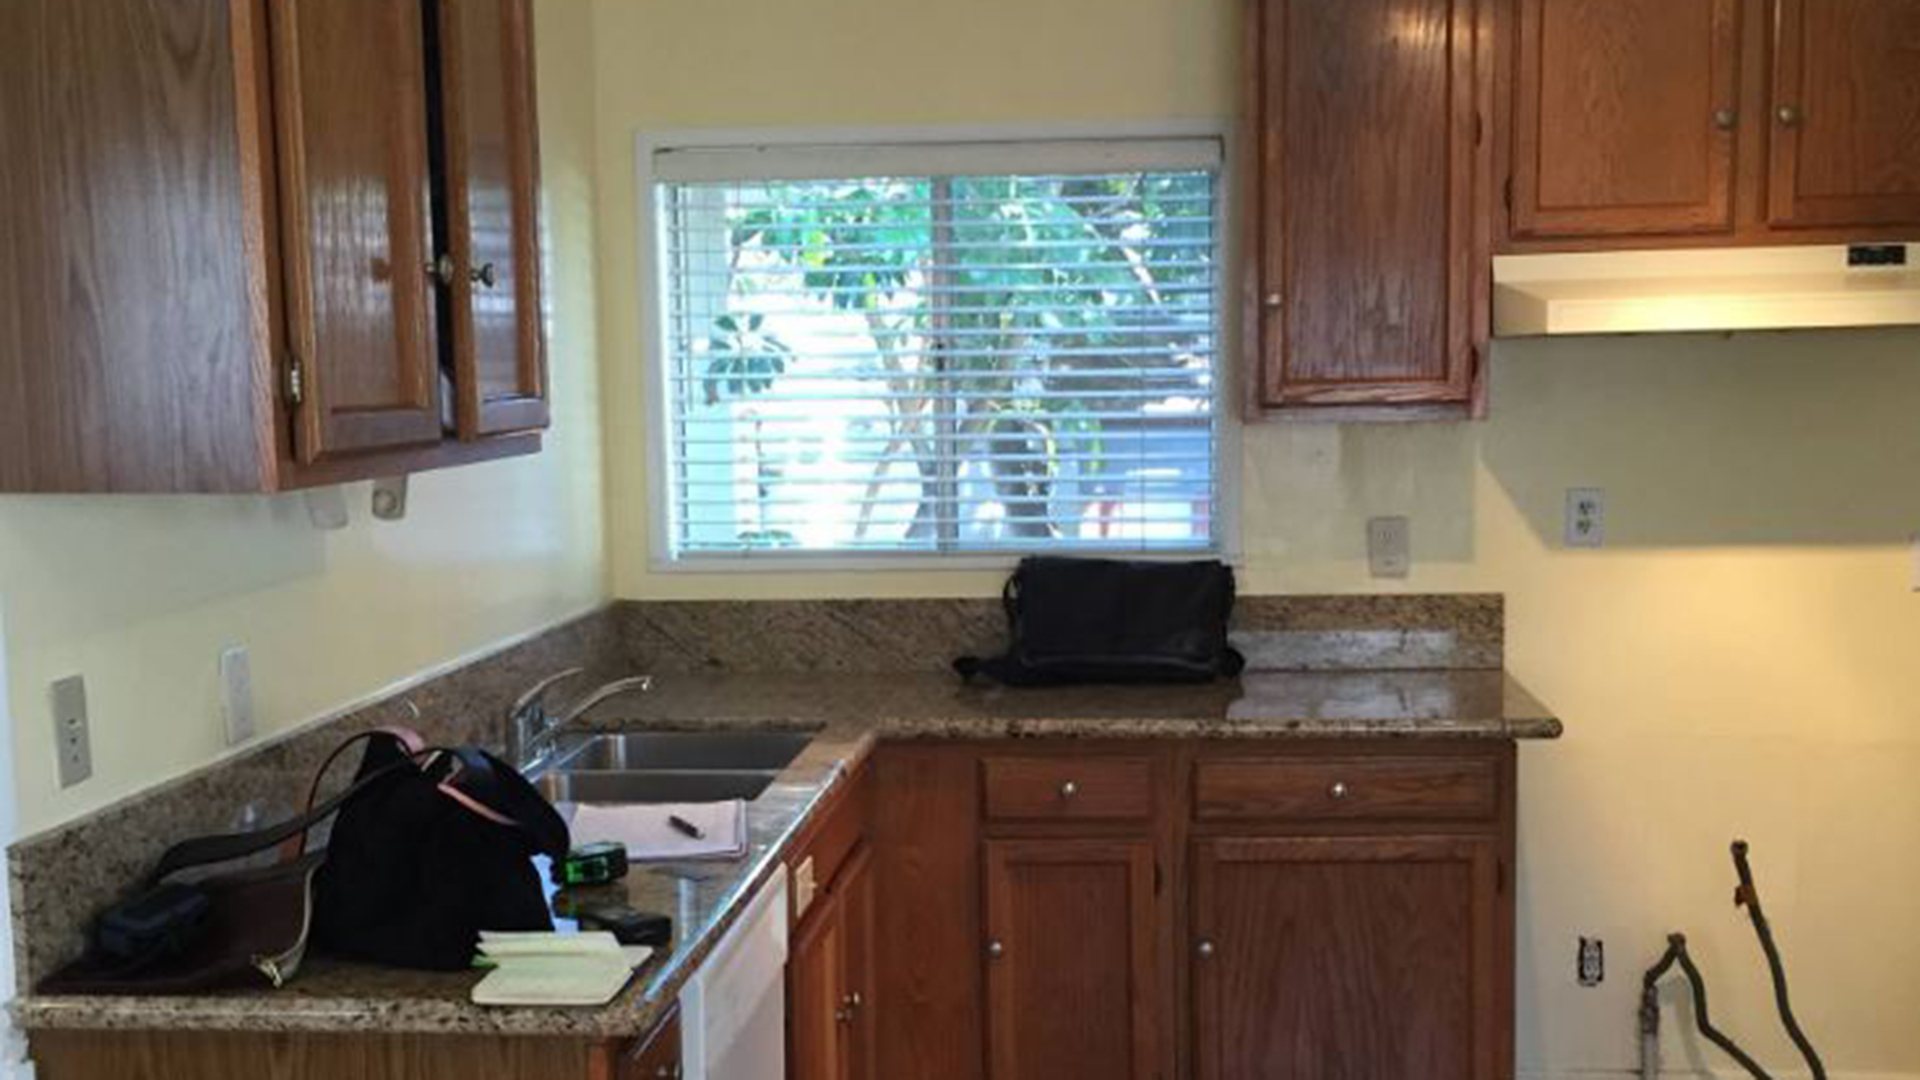 Kitchen makeover: Before and after photos